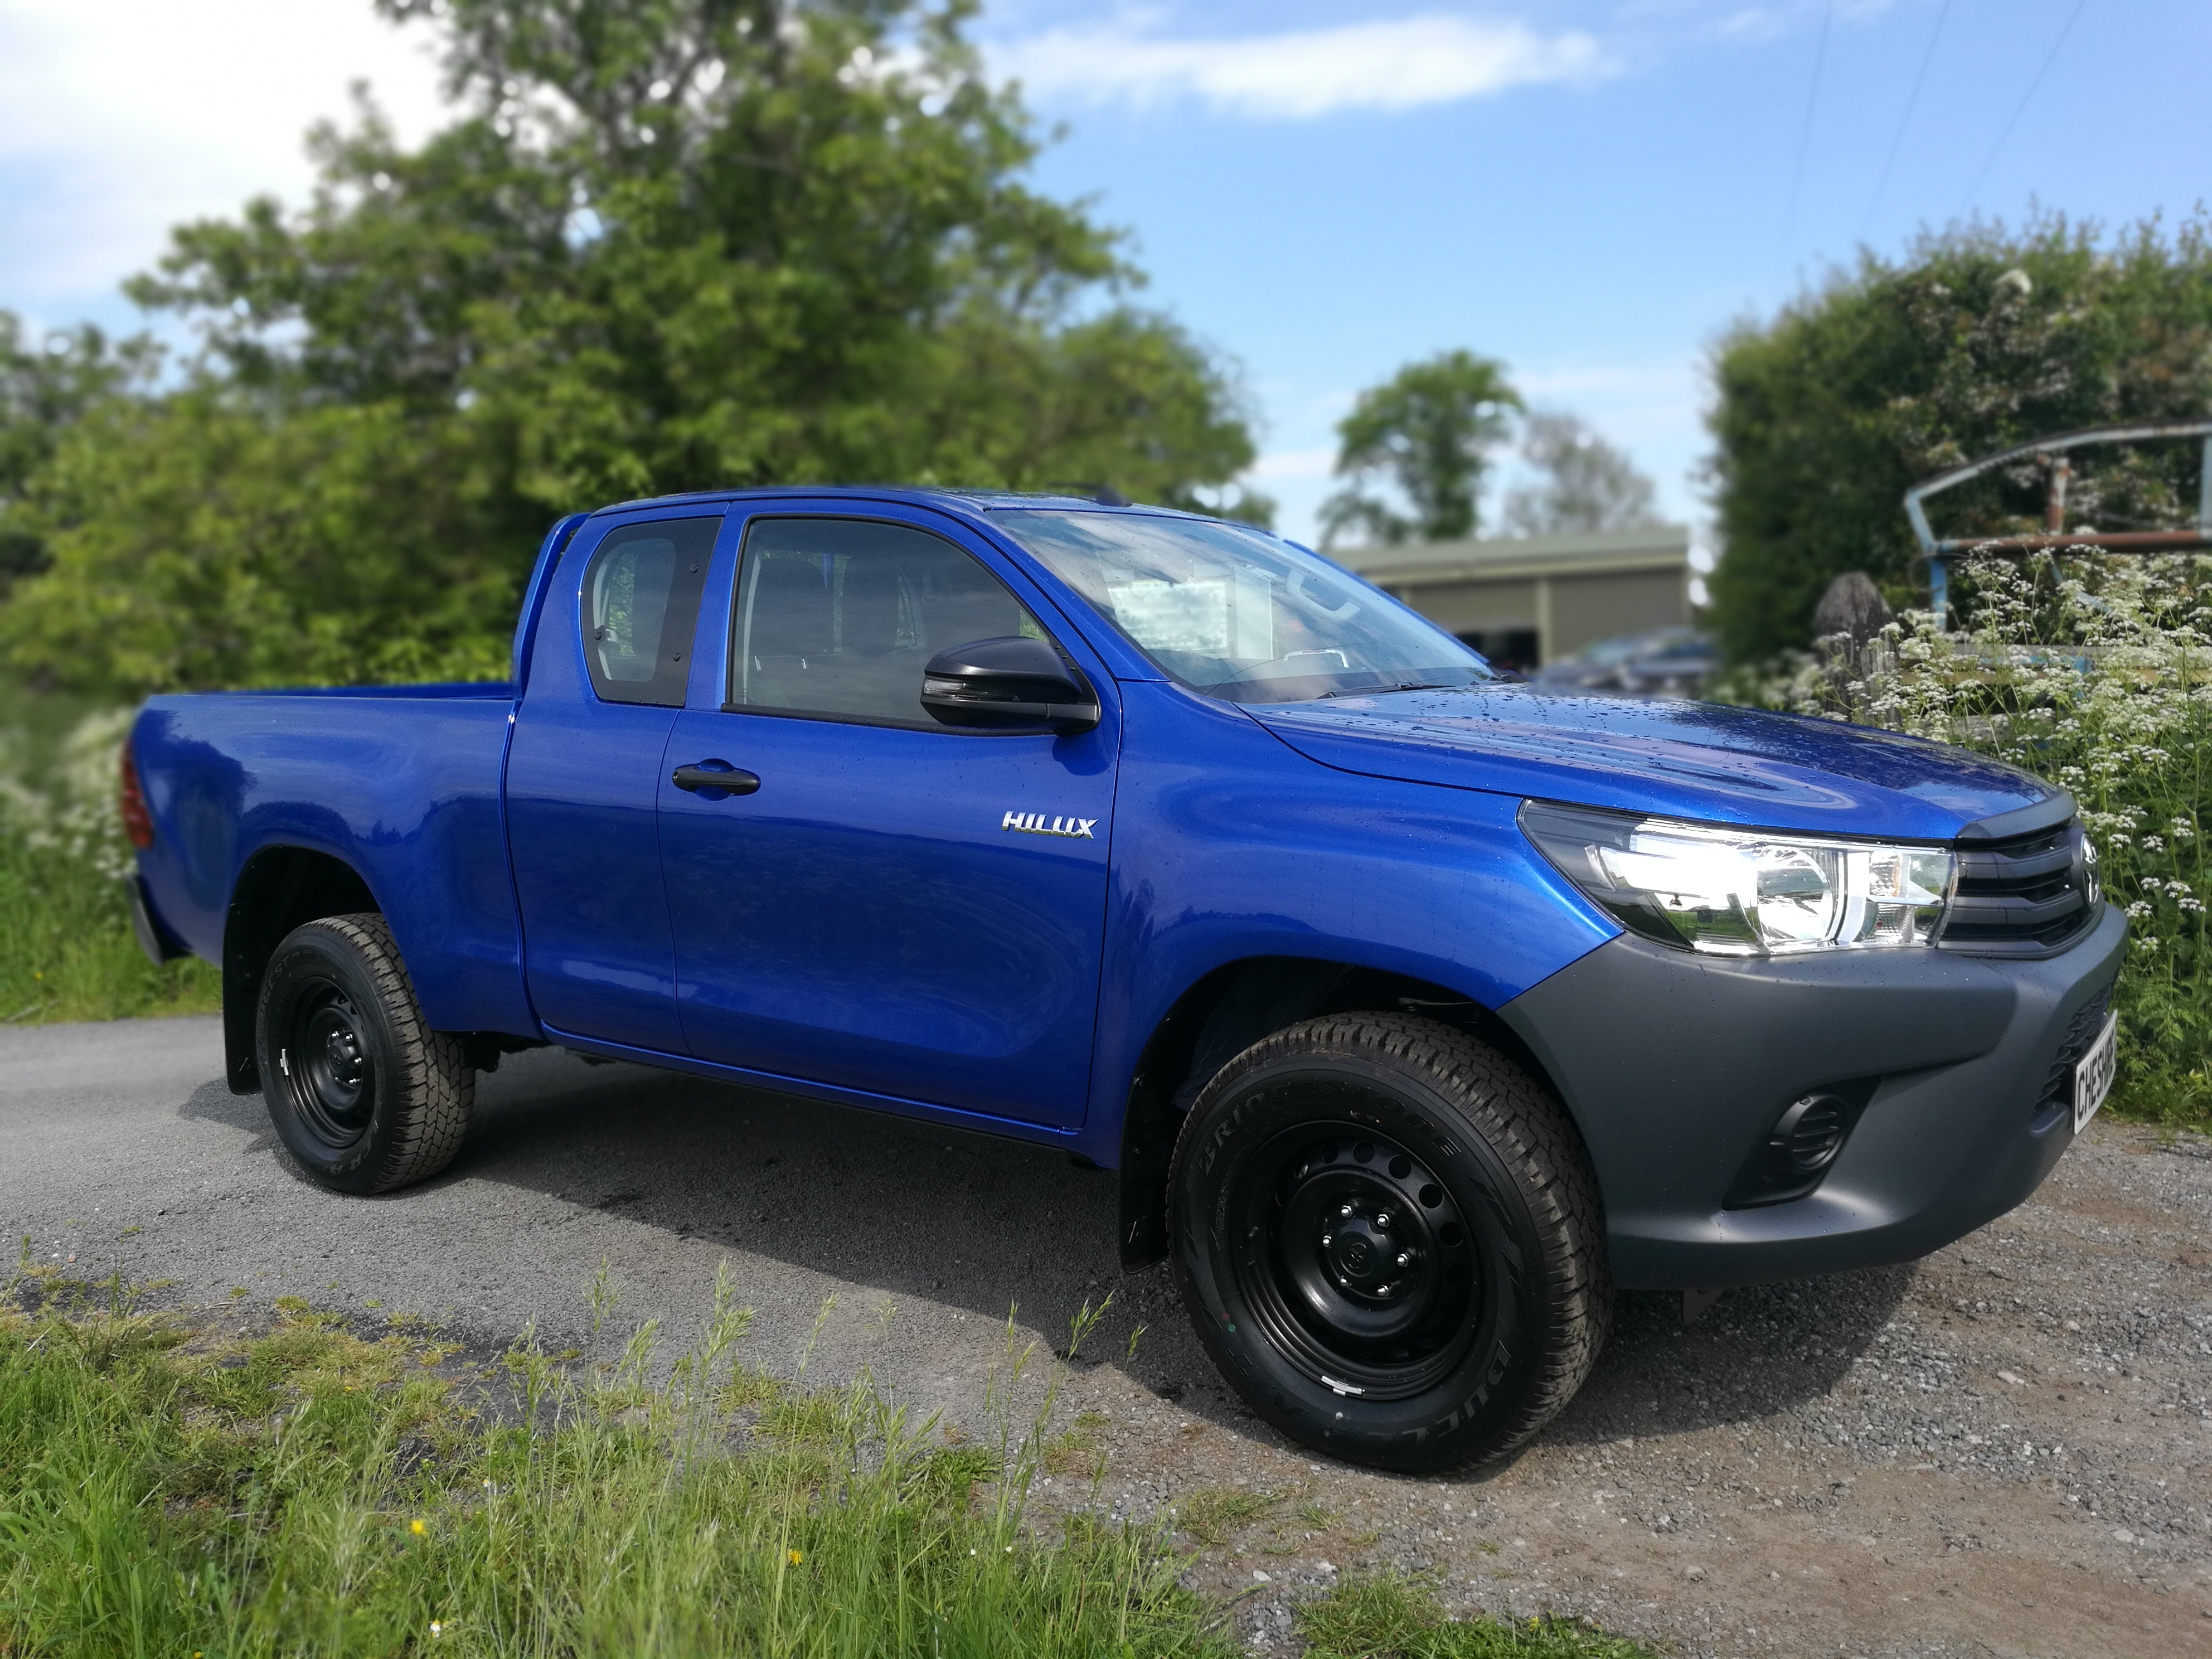 19 Hilux Blue Extra (2)